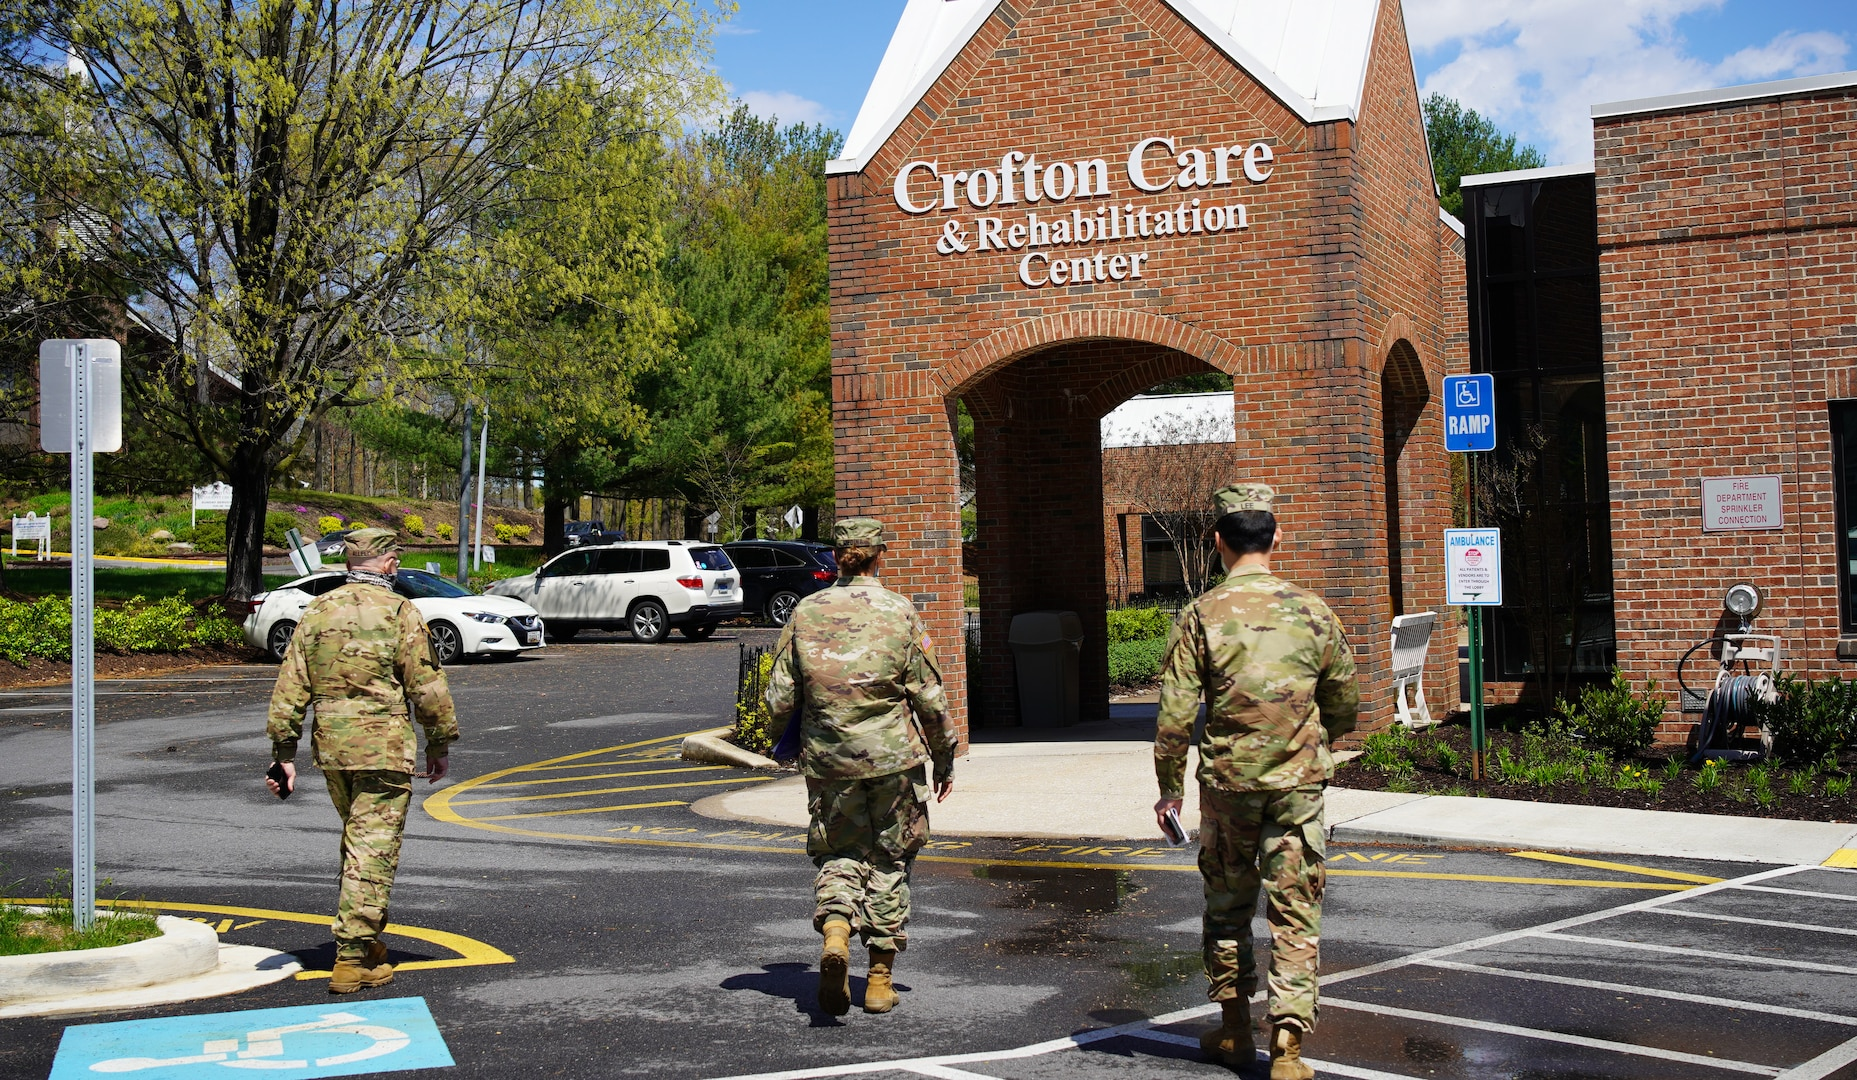 Maryland National Guard members led by Col. Eric Allely, Maryland State Surgeon, arrive at Crofton Care & Rehabilitation Center in Crofton, Maryland, April 9, 2020, to evaluate measures to protect against the spread of COVID-19.